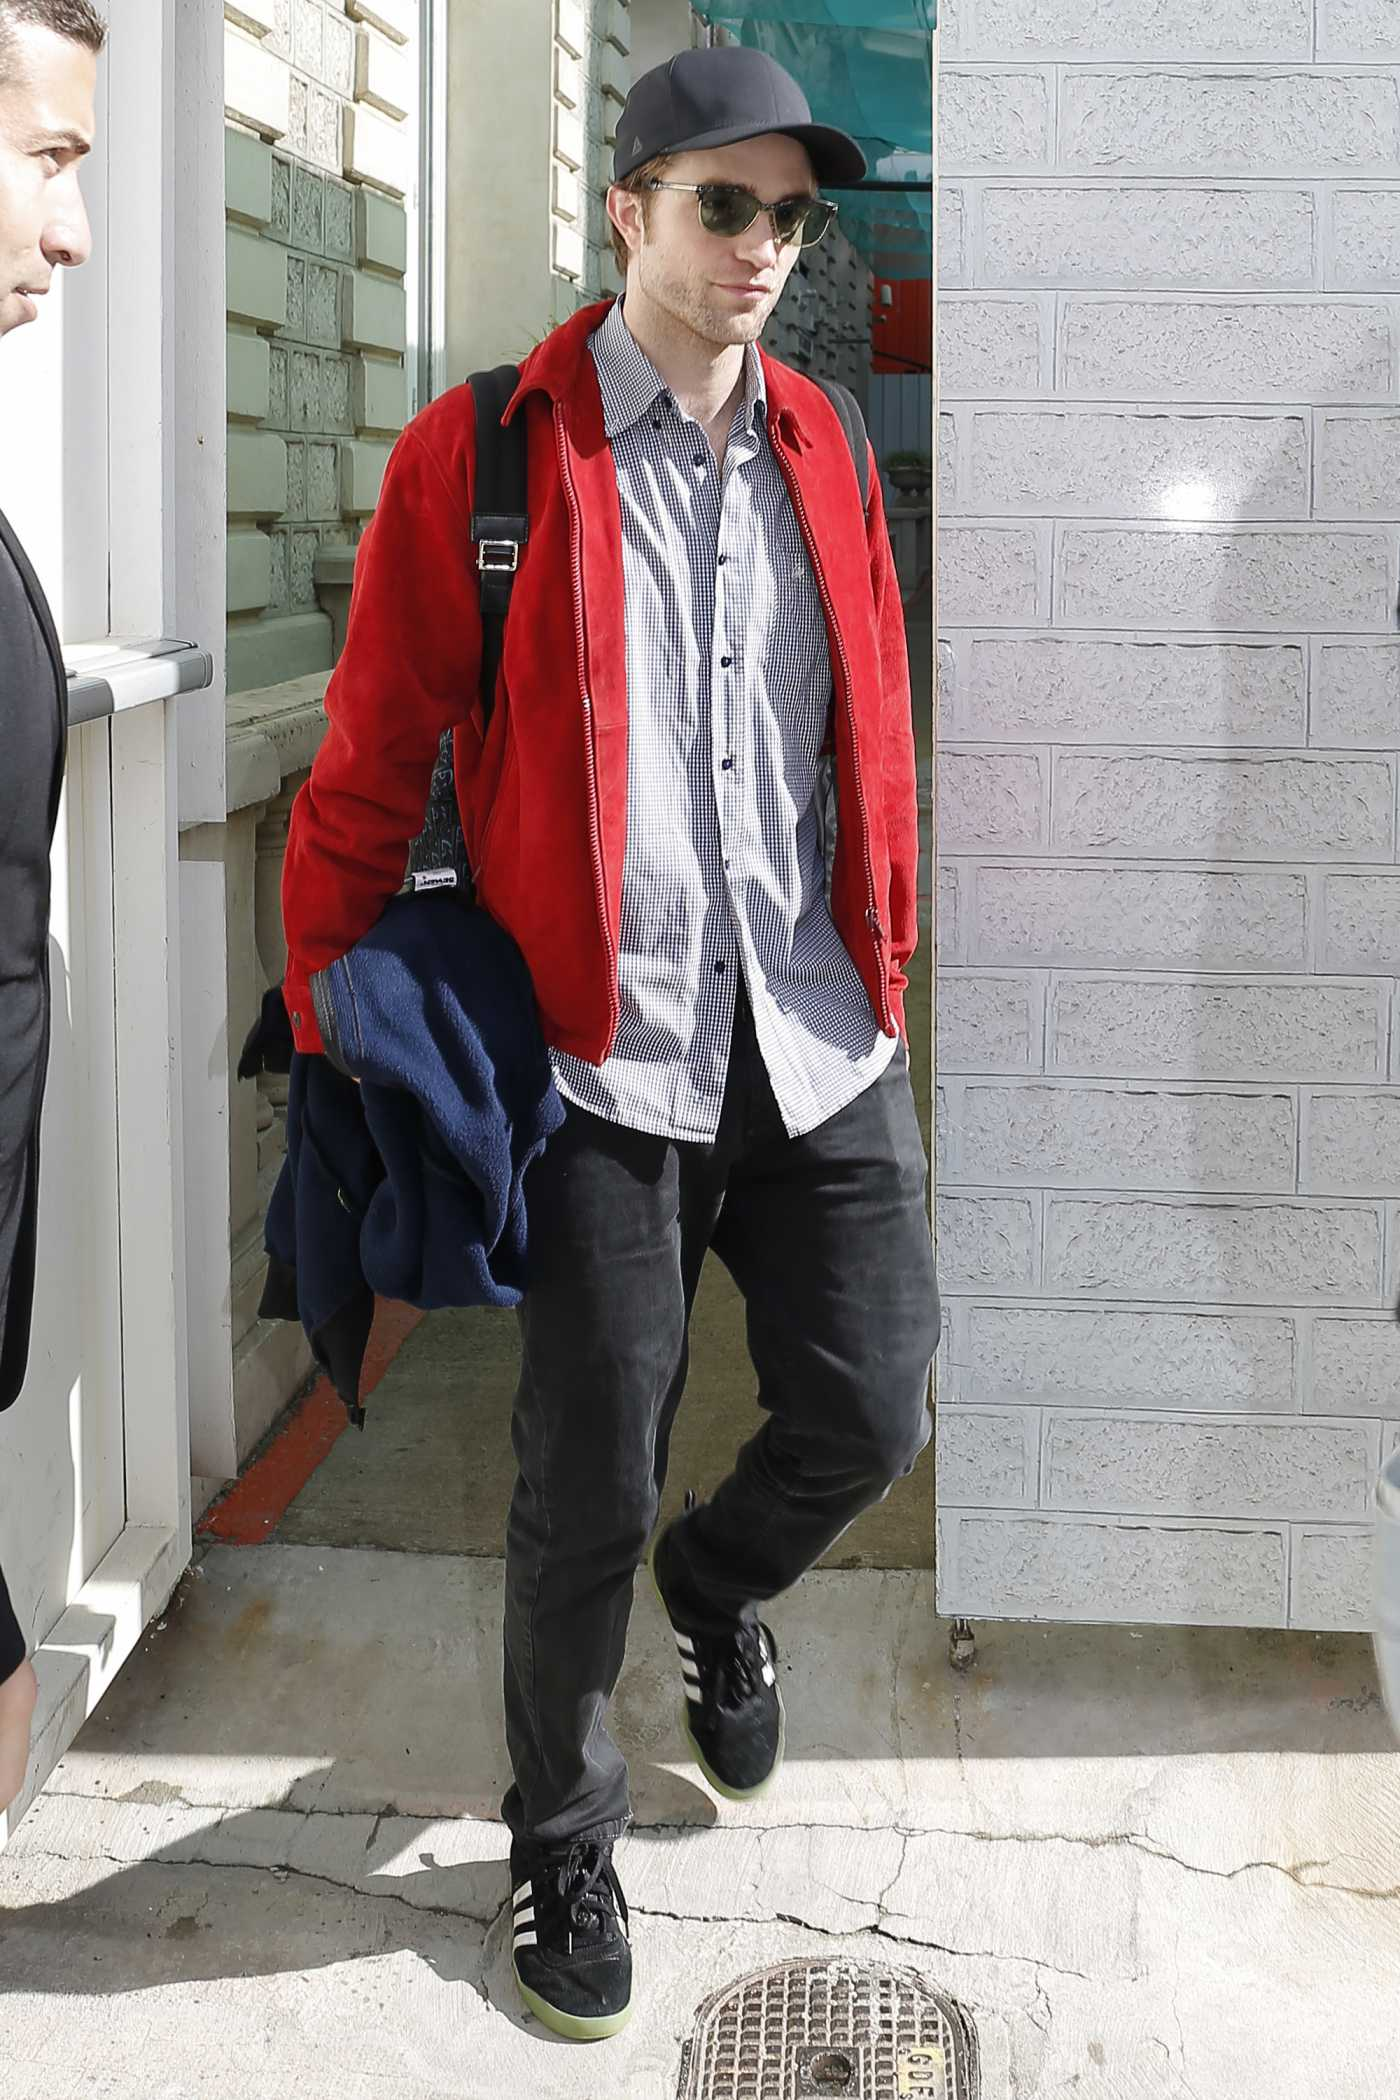 Robert Pattinson in a Red Jacket Was Seen Out in Cannes 05/20/2019